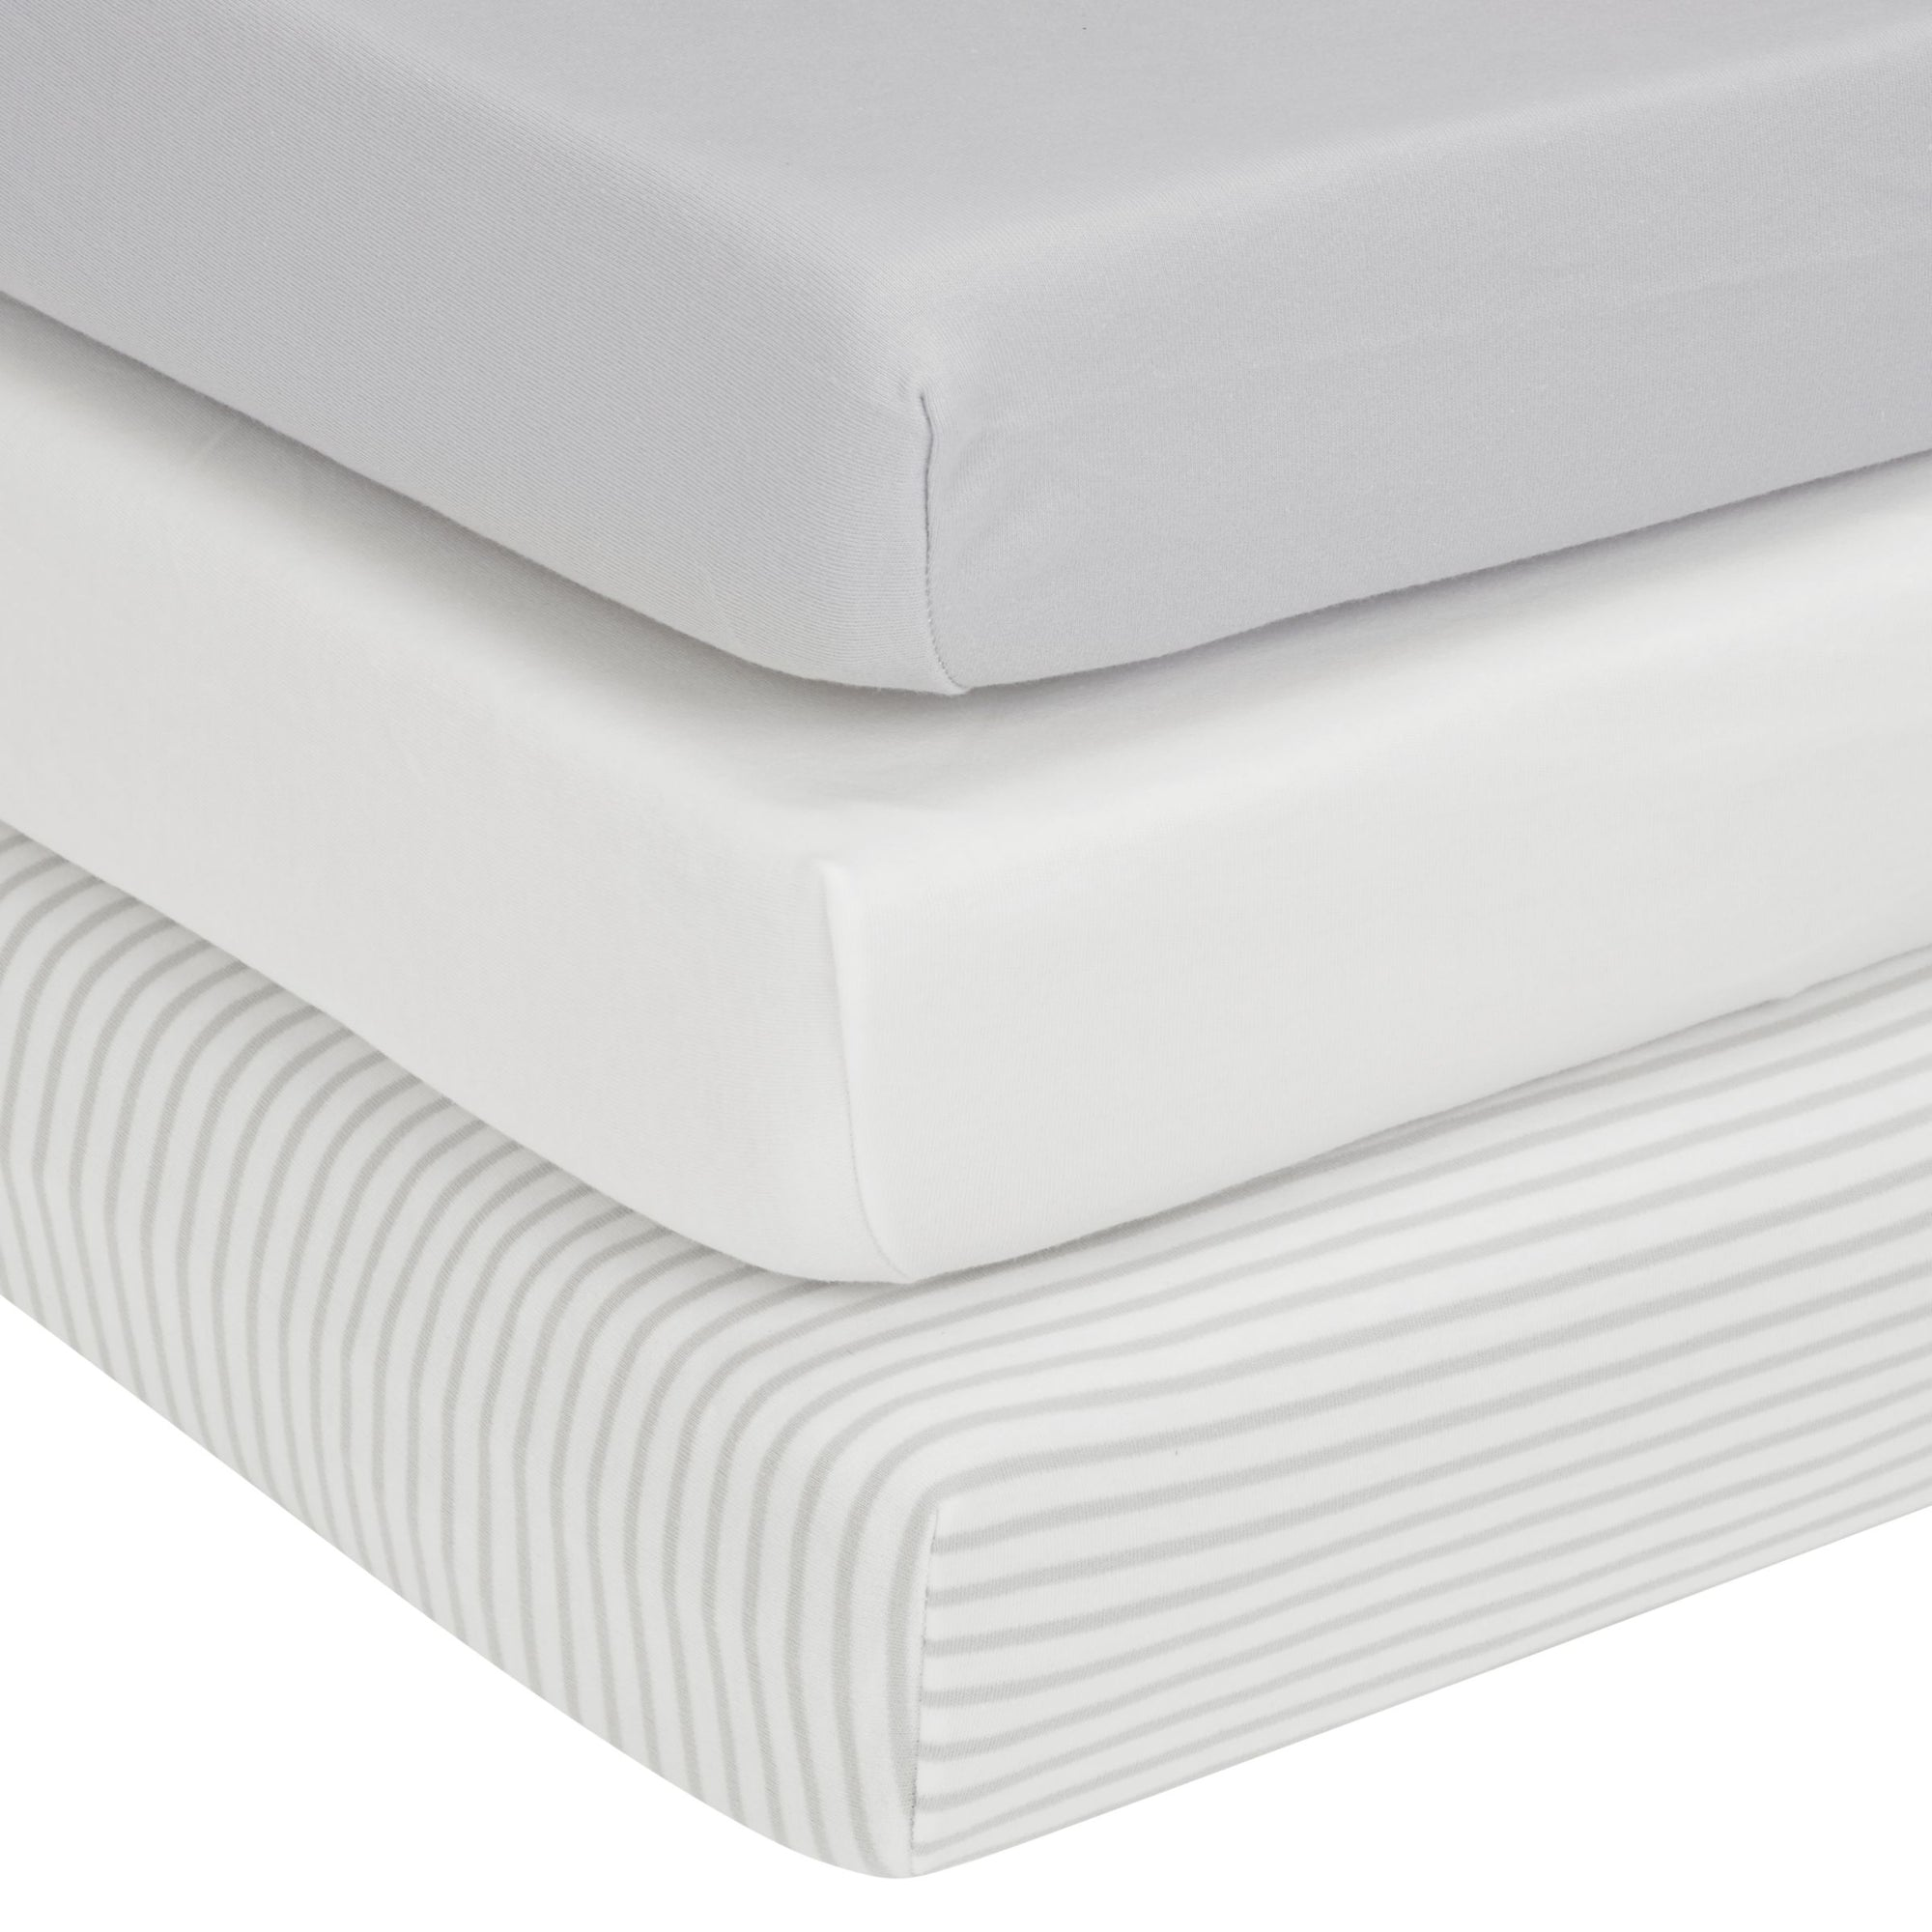 John Lewis & Partners GOTS Organic Cotton Fitted Cotbed Sheet, Pack of 3, 70 x 140cm